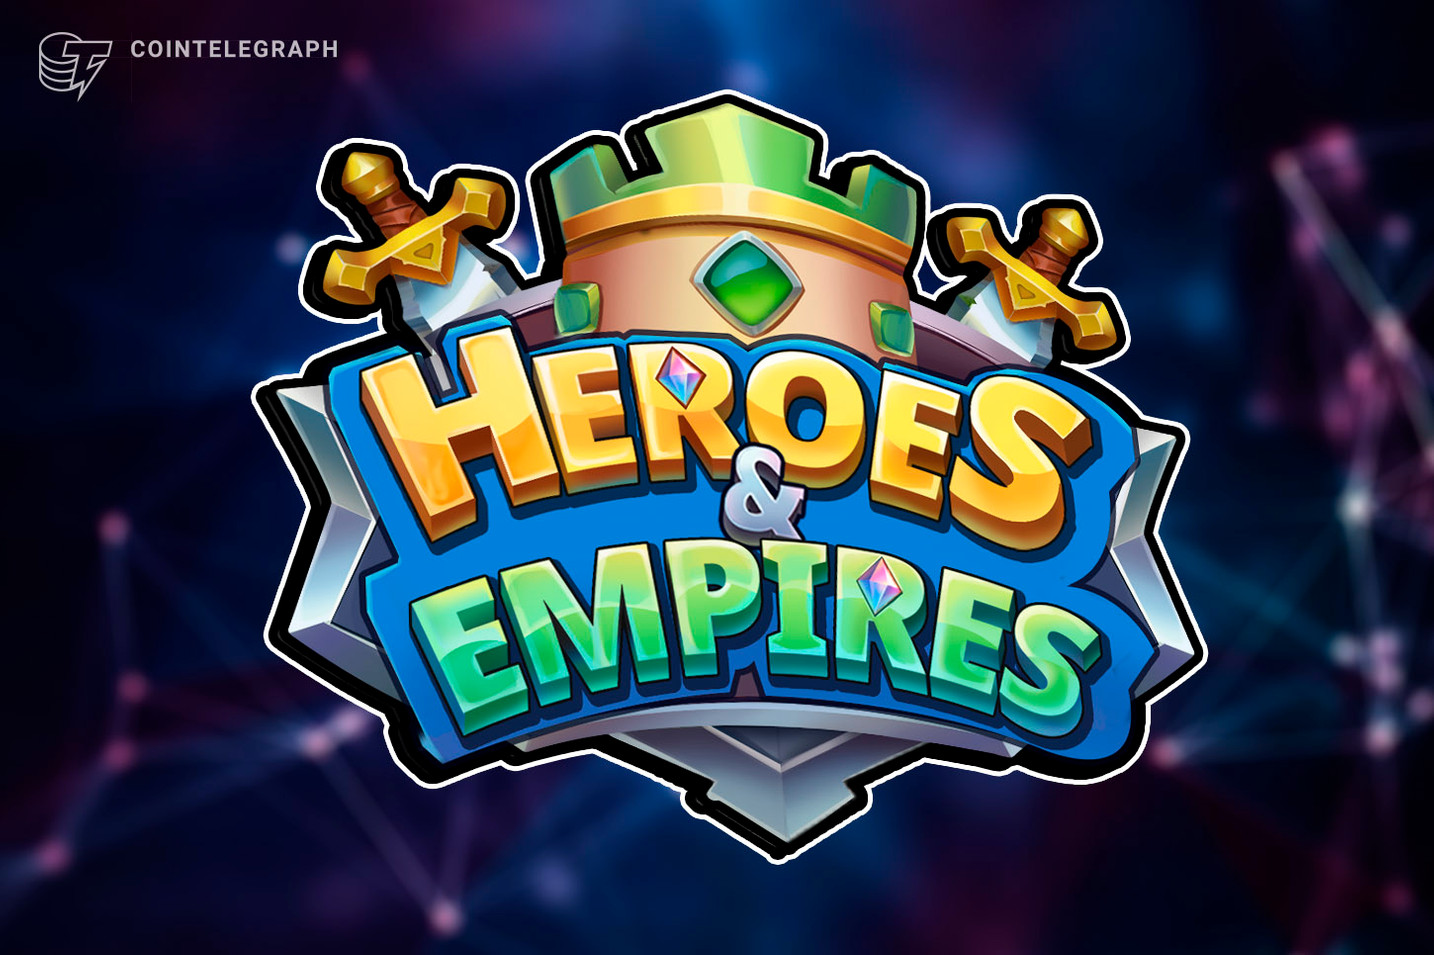 Blockchain based play-to-earn game 'Heroes & Empires' raised $1.5 M